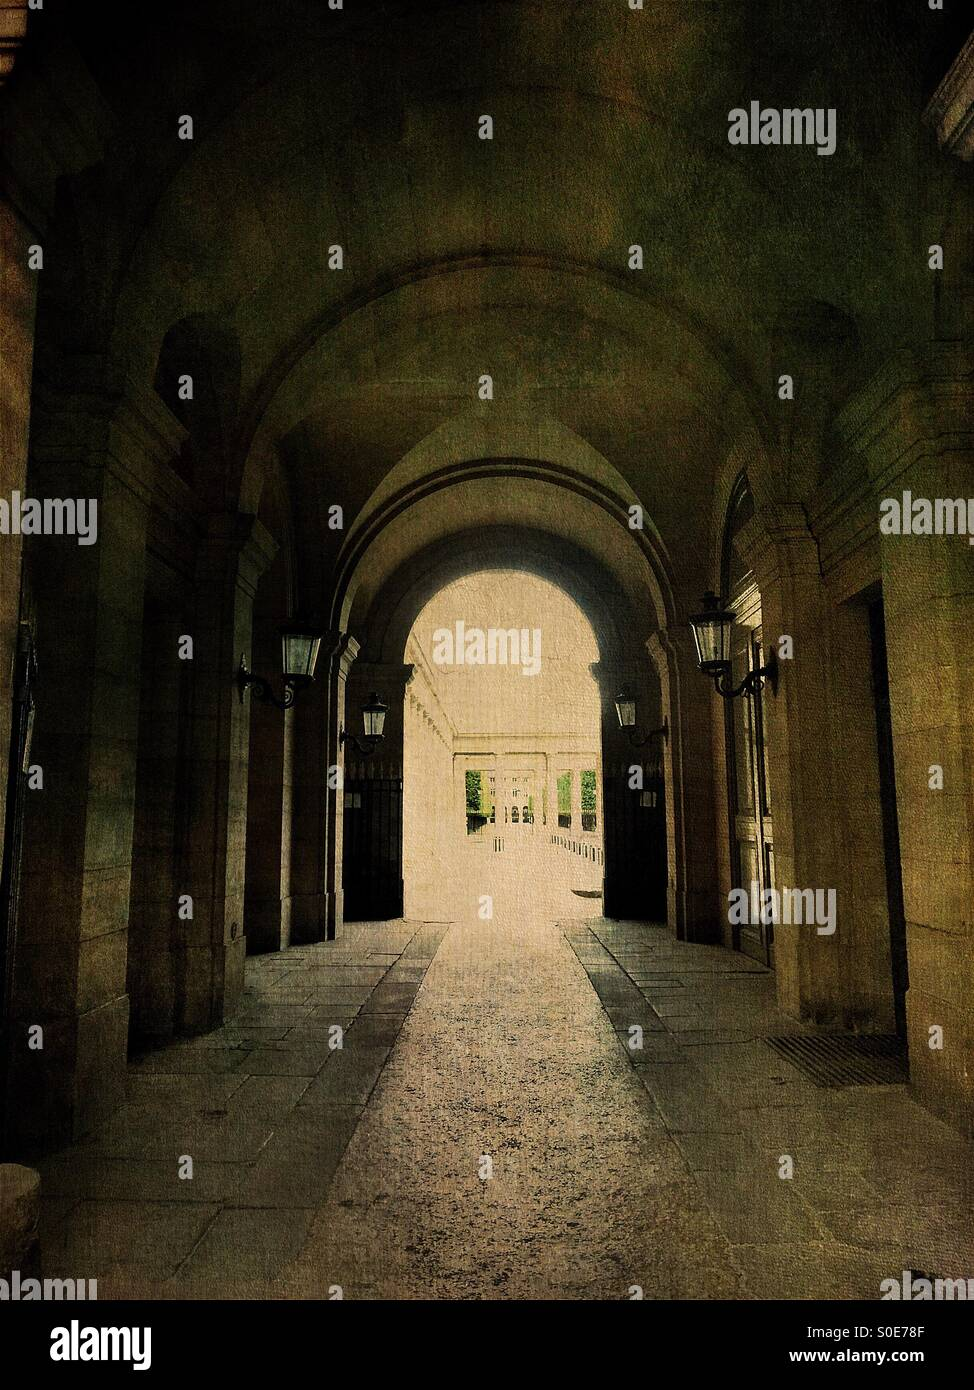 Arcade view of entrance to the galleries of the Place du Palais-Royal in the historic centre of Paris, France. Antique, Stock Photo